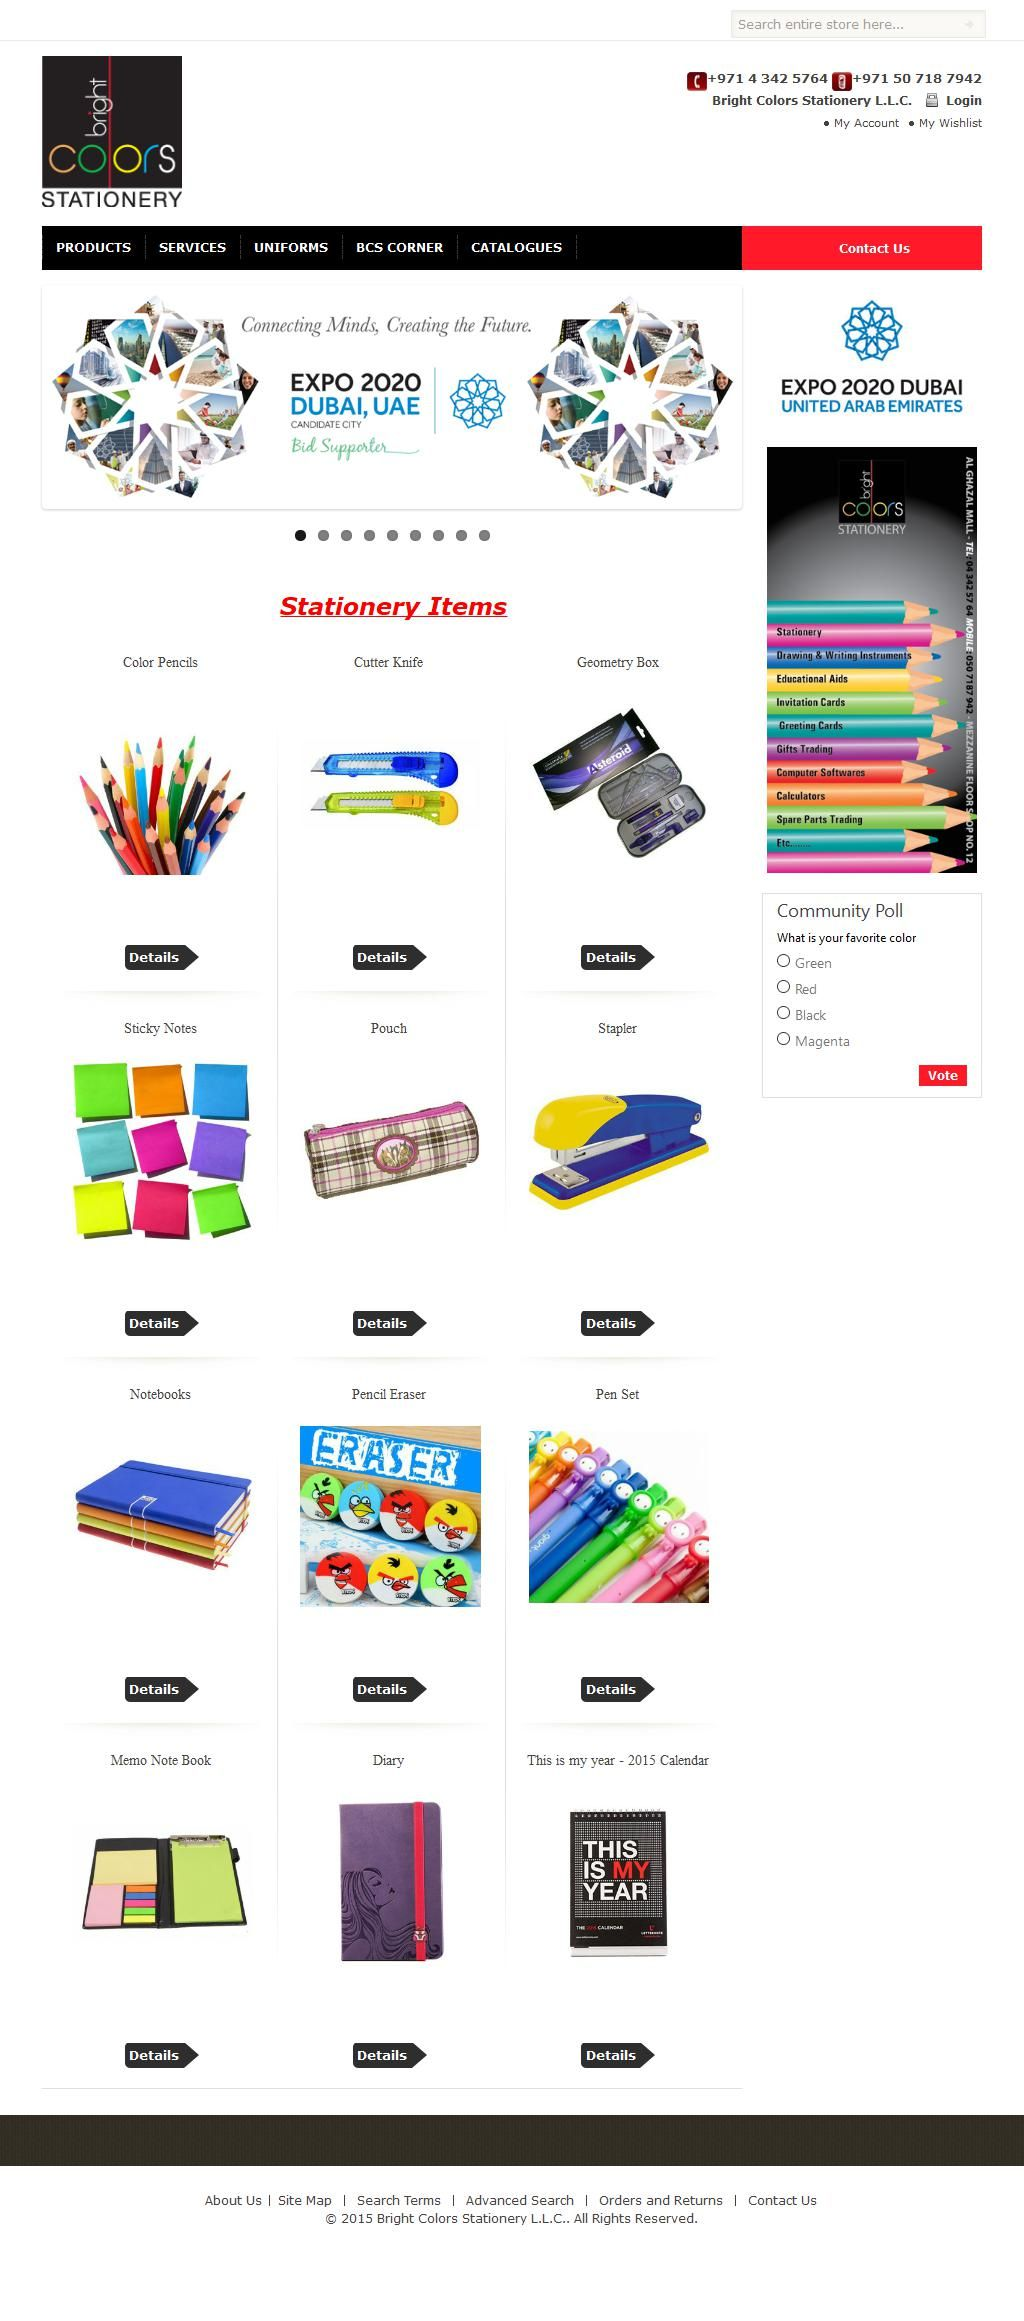 bright colors stationery llc al ghazal mall 169 al wasl road m